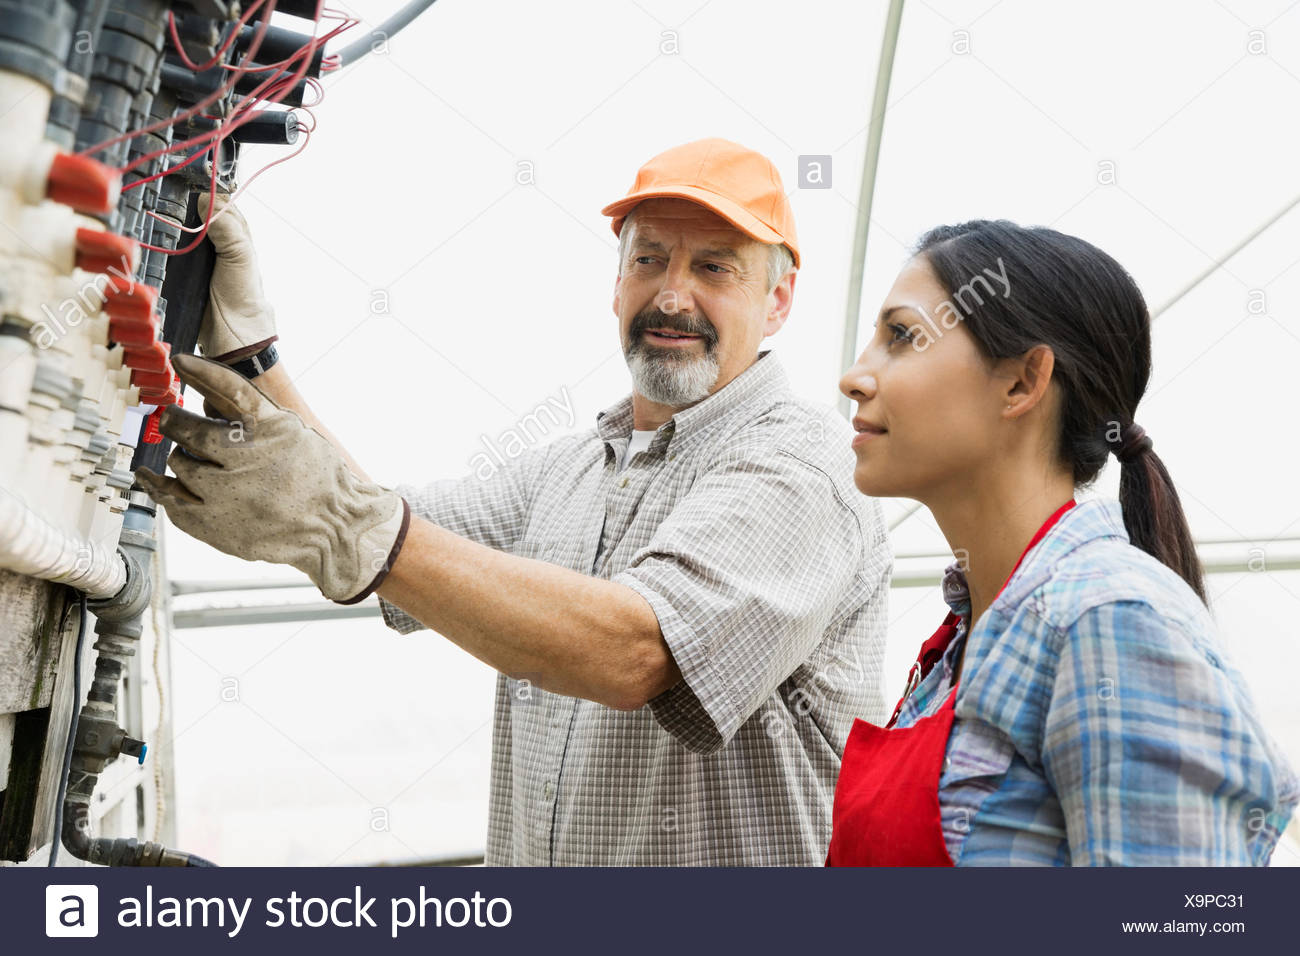 Workers checking equipment in greenhouse - Stock Image